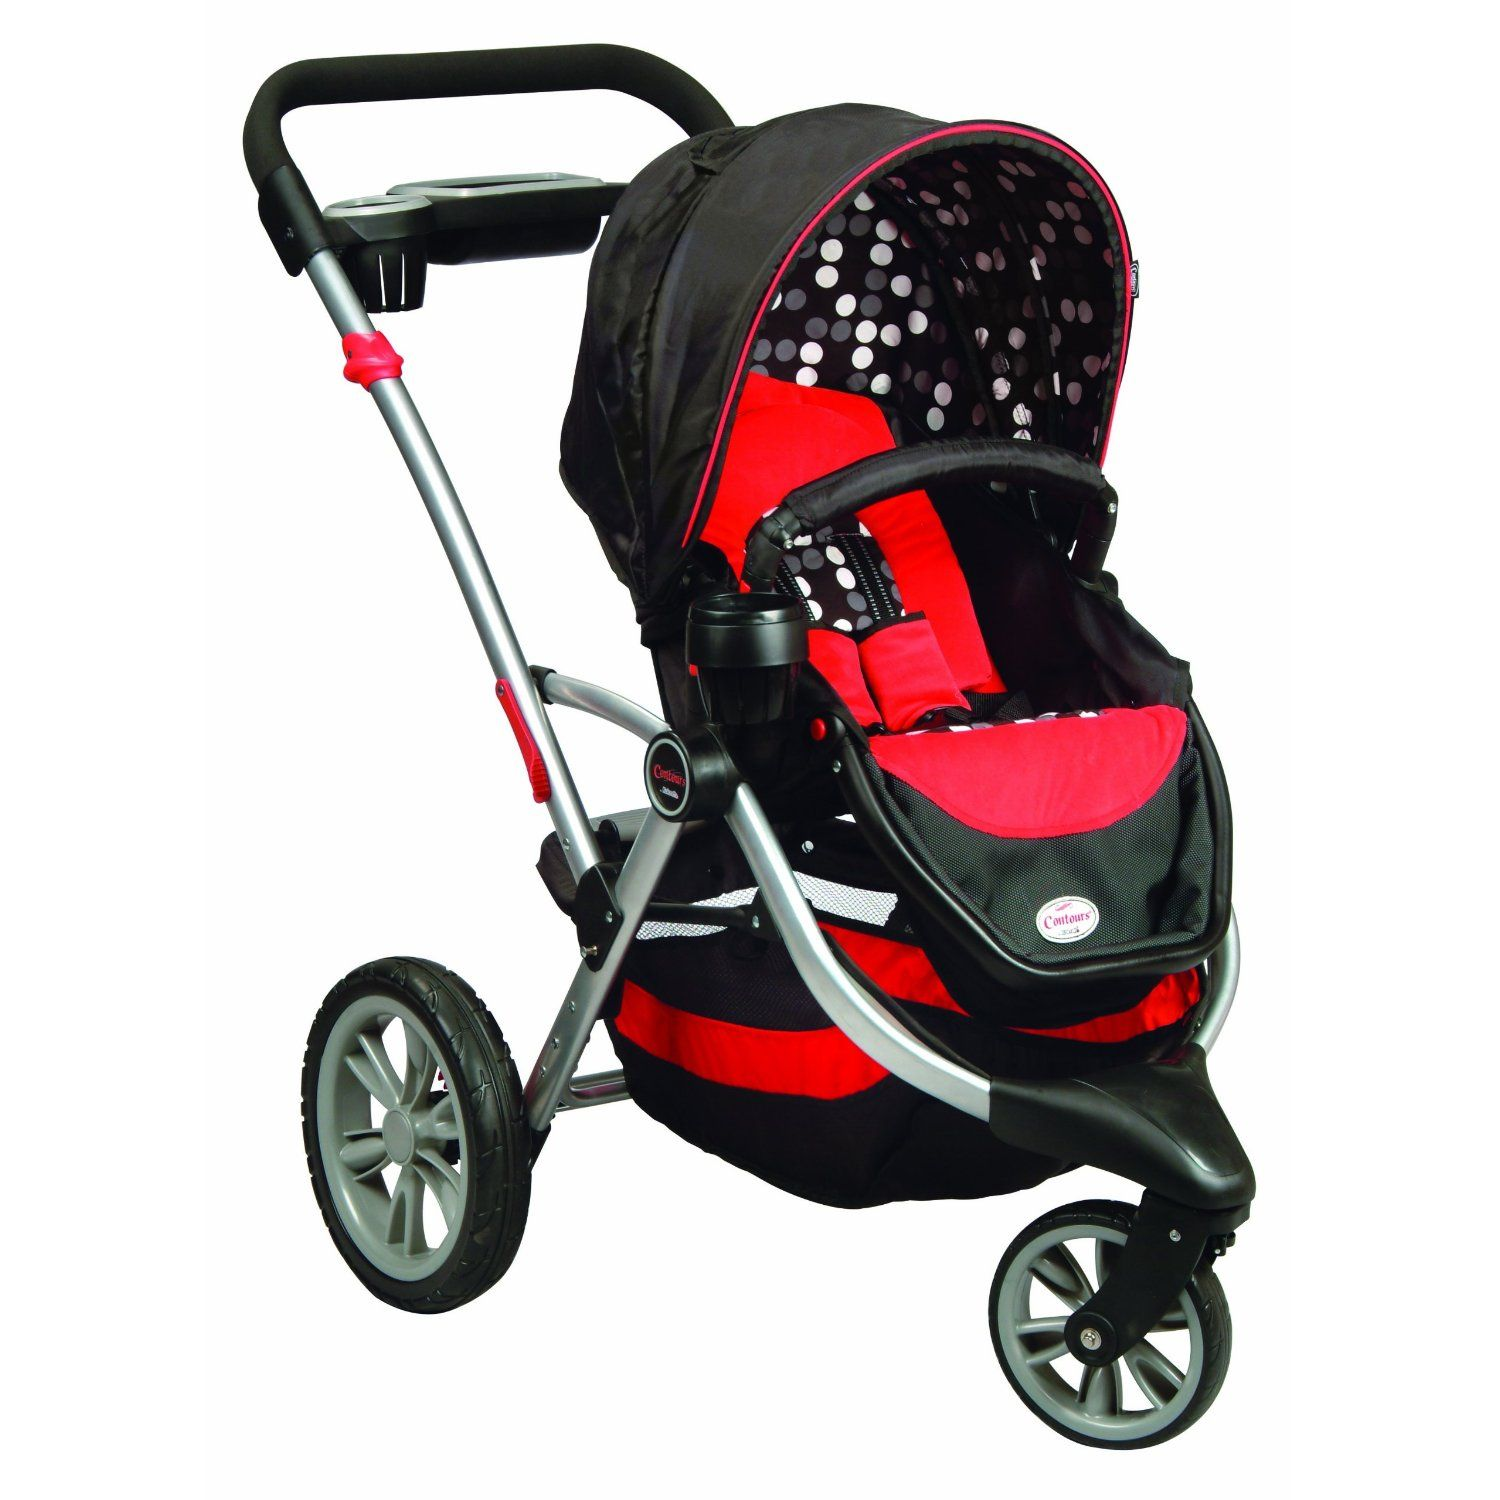 17 Best images about Best Baby Strollers on Pinterest | Jogging ...